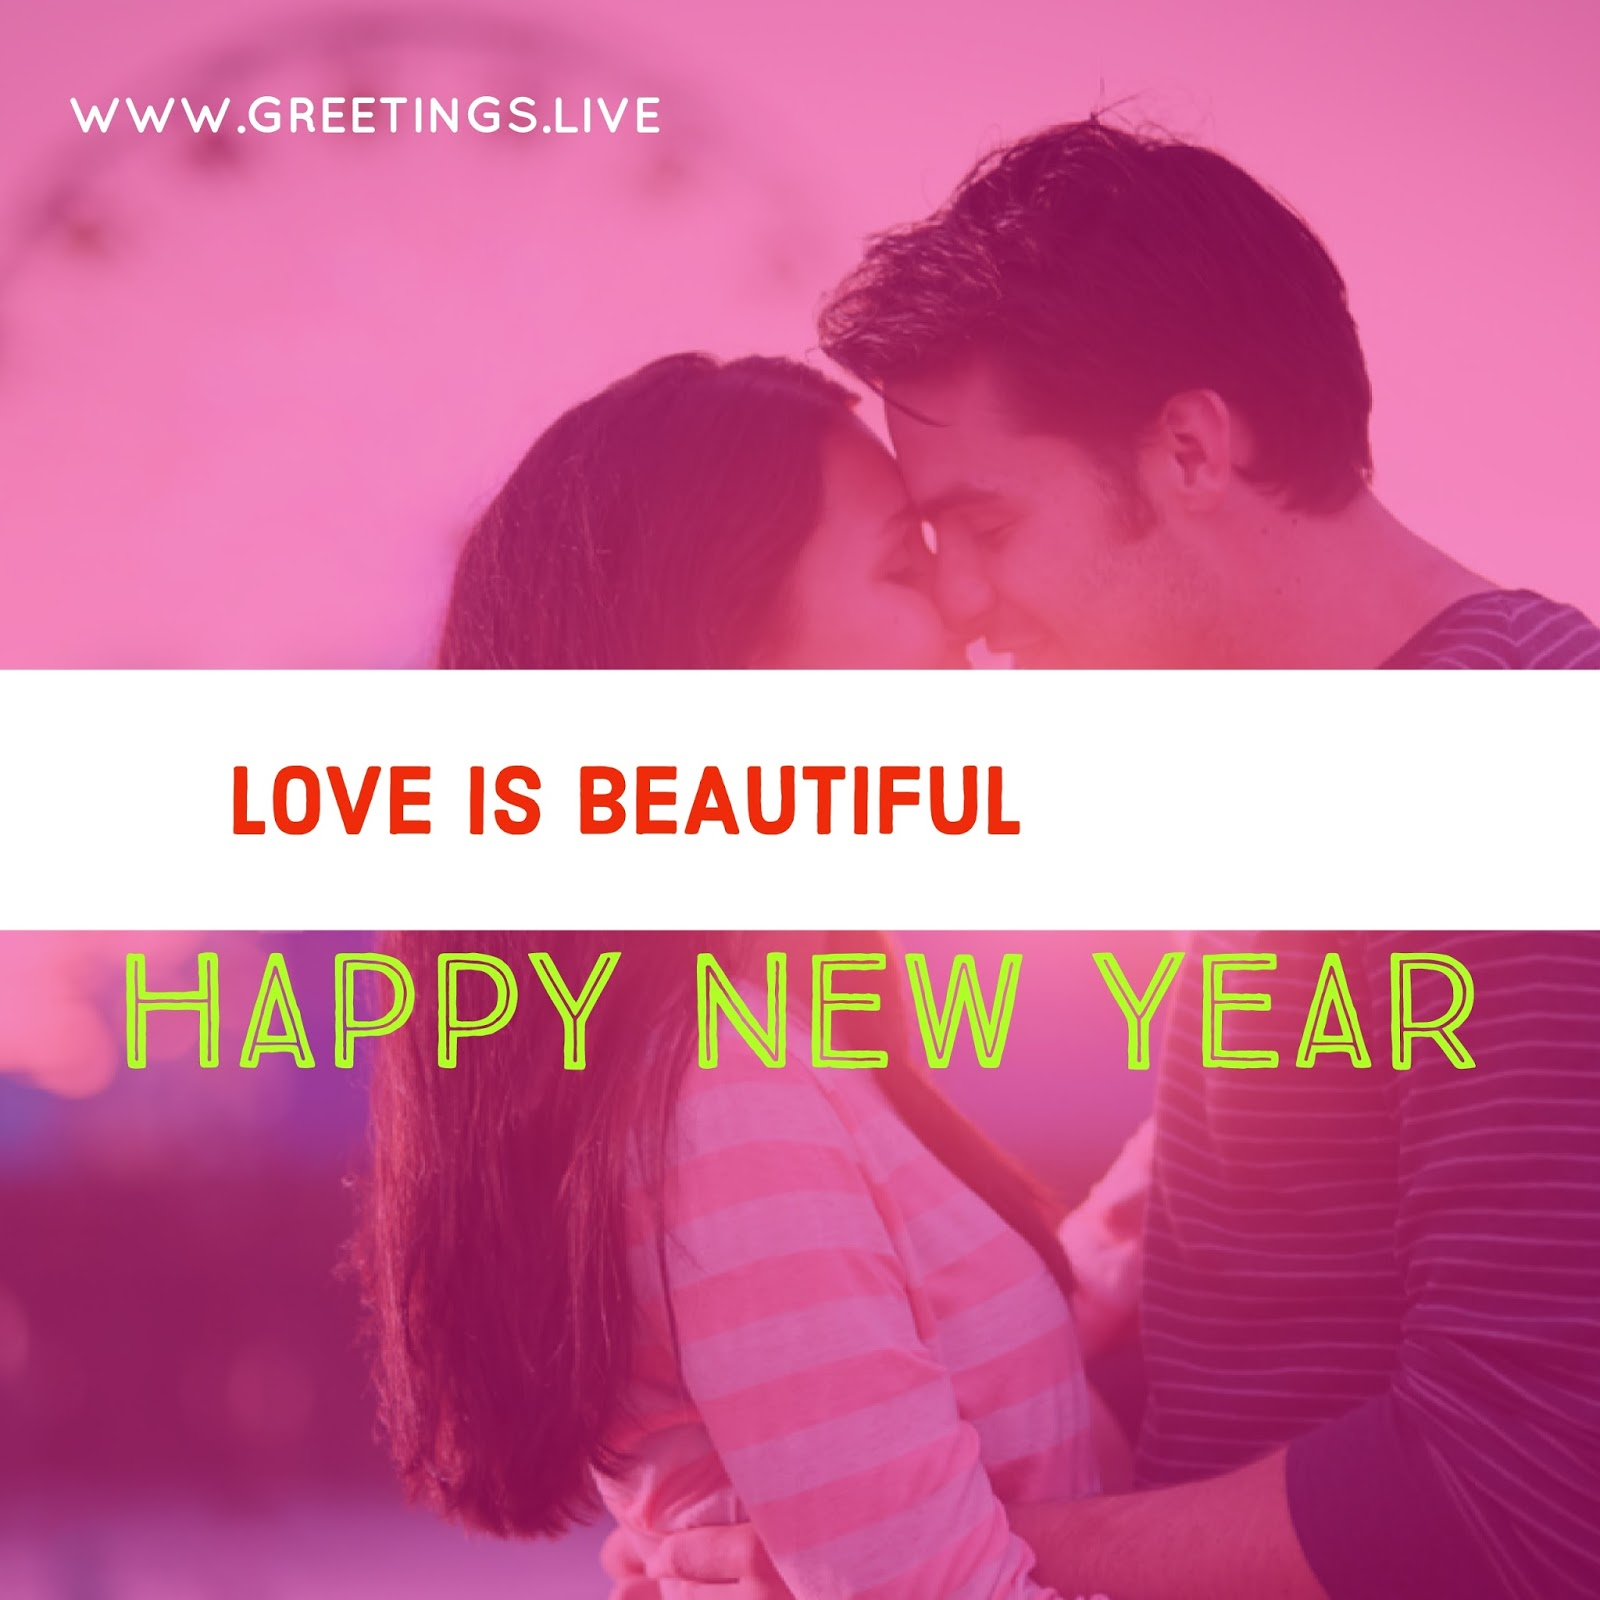 2018 new year wishes greetings love greetings on happy new year love greetings on happy new year picture messages m4hsunfo